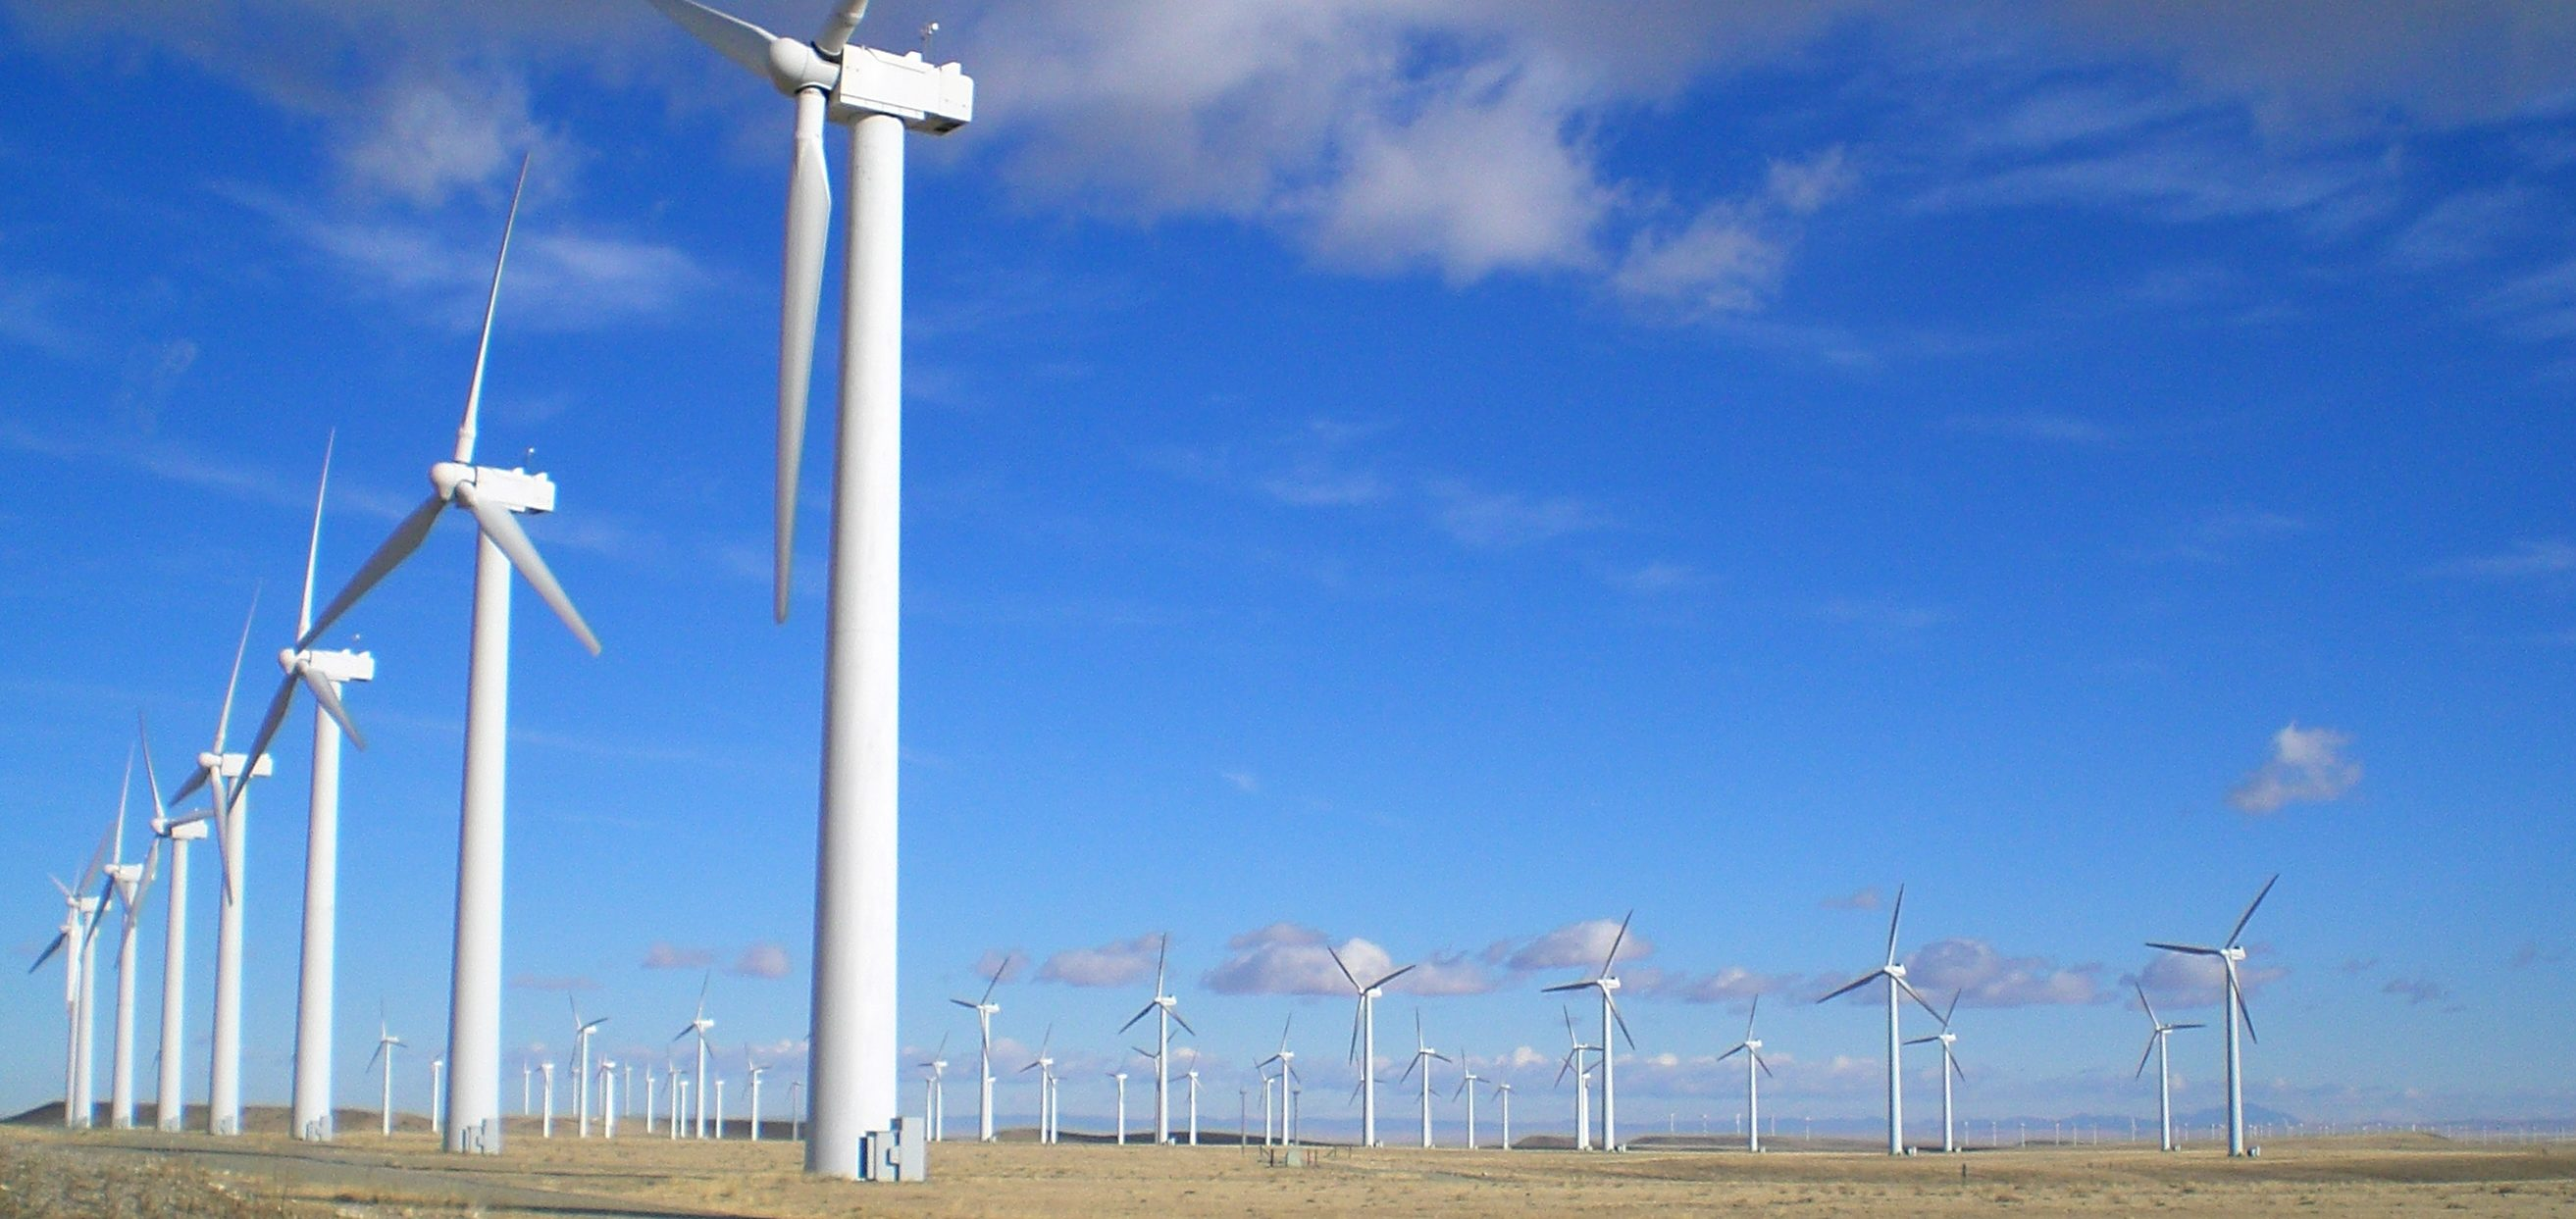 dozens of wind turbines on a prairie project WLC provided wind and transmission support services